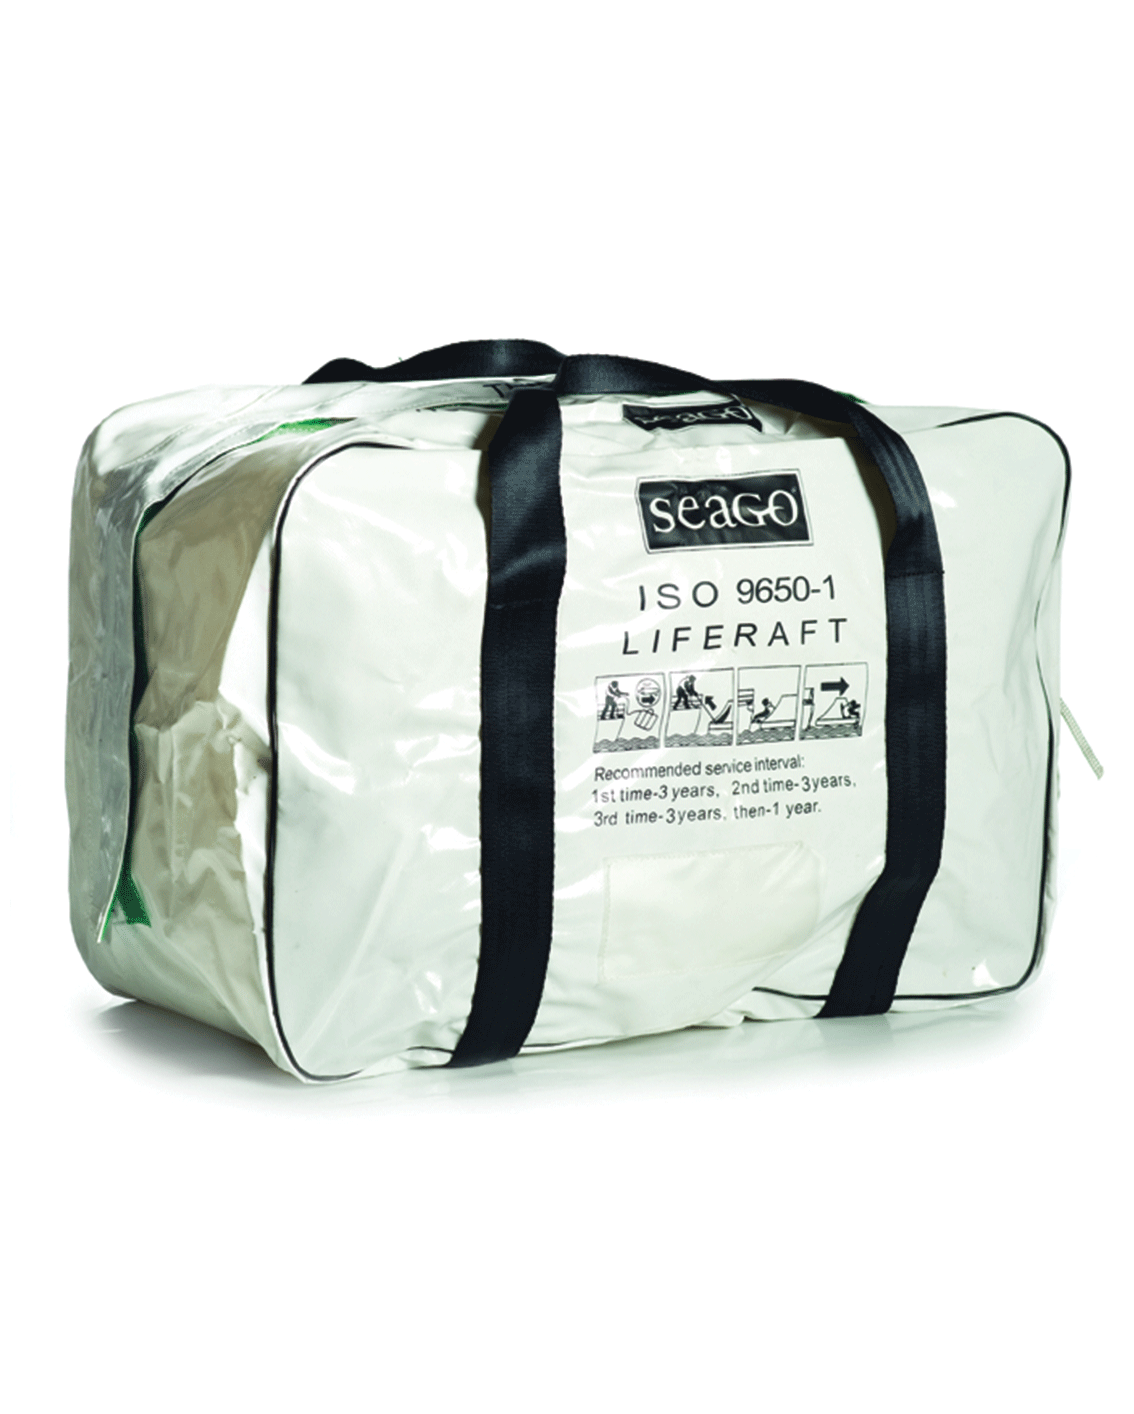 Seago Sea Master ISO 9650-1 Liferaft - Valise or Container